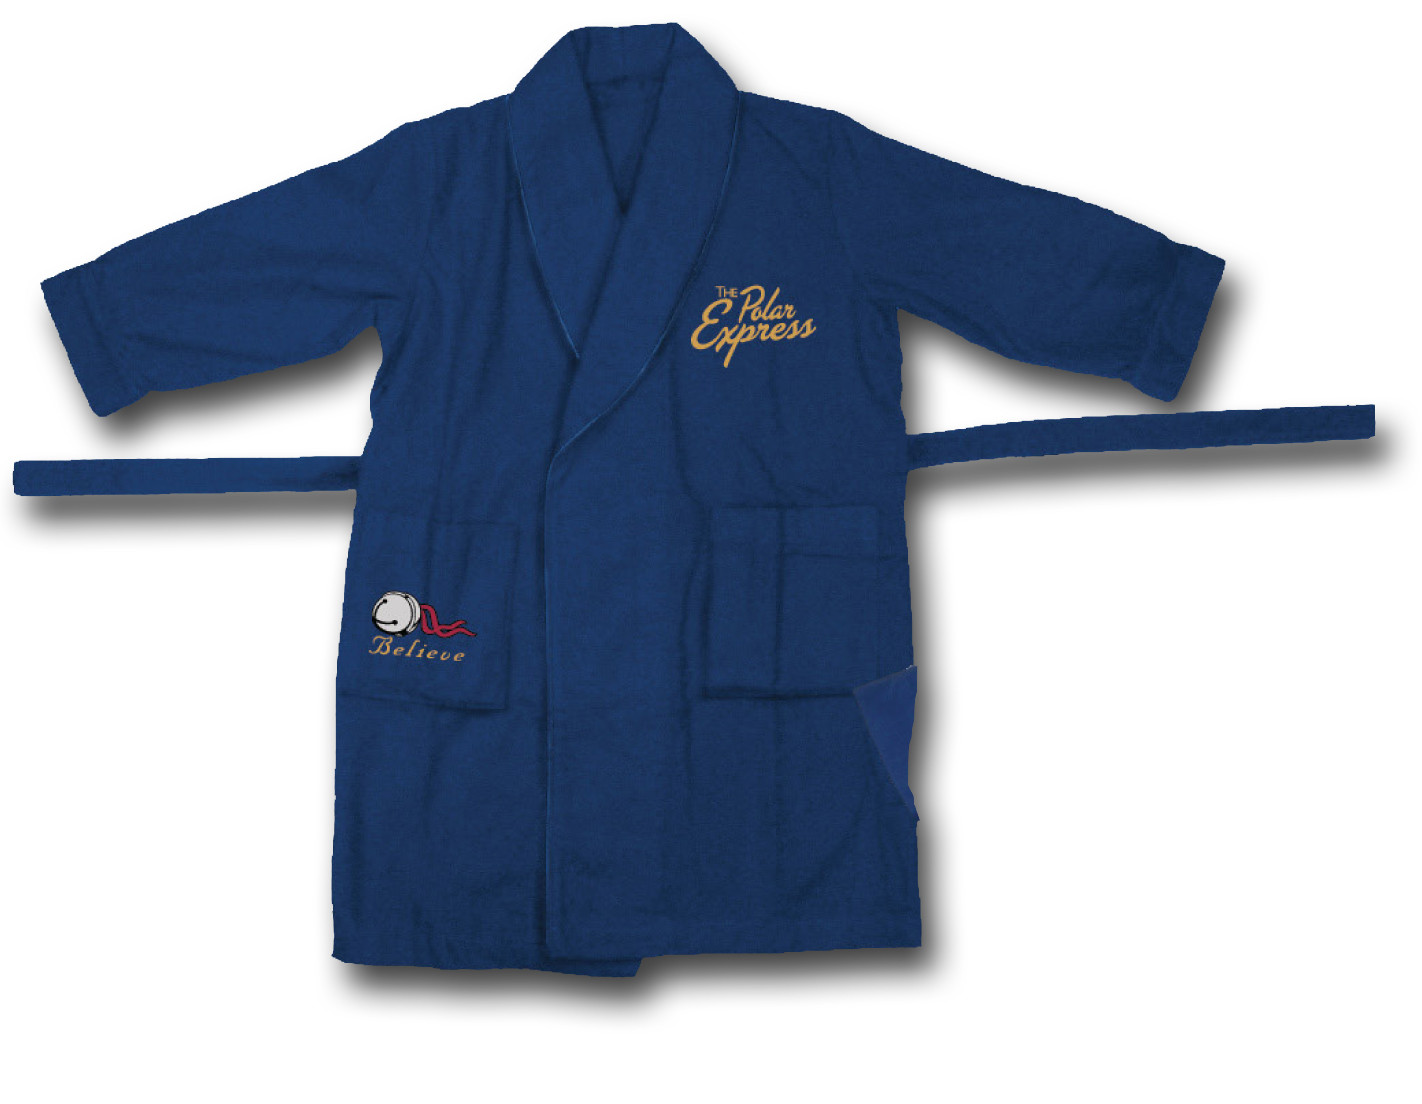 Youth Polar Express Robe (5/6),SL140123-M